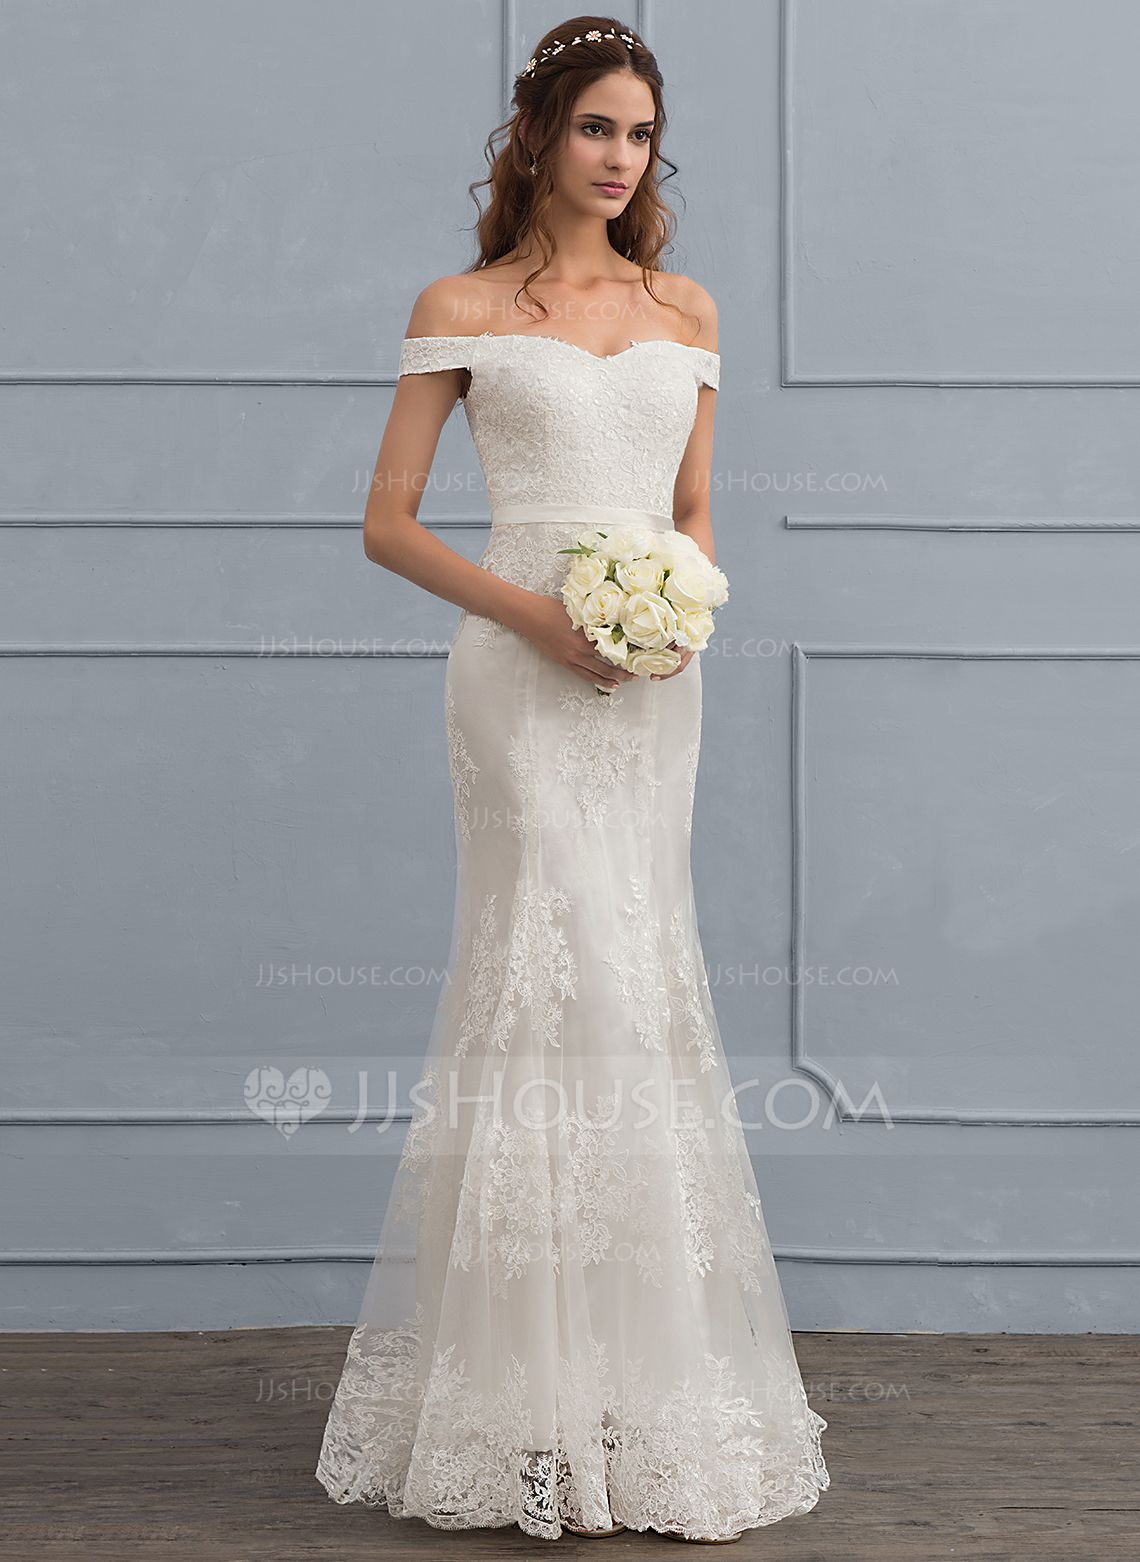 Us 256 00 Trumpet Mermaid Off The Shoulder Sweep Train Tulle Lace Wedding Dress With Sequins Jj S House Wedding Dresses Wedding Dresses Lace Designer Wedding Dresses